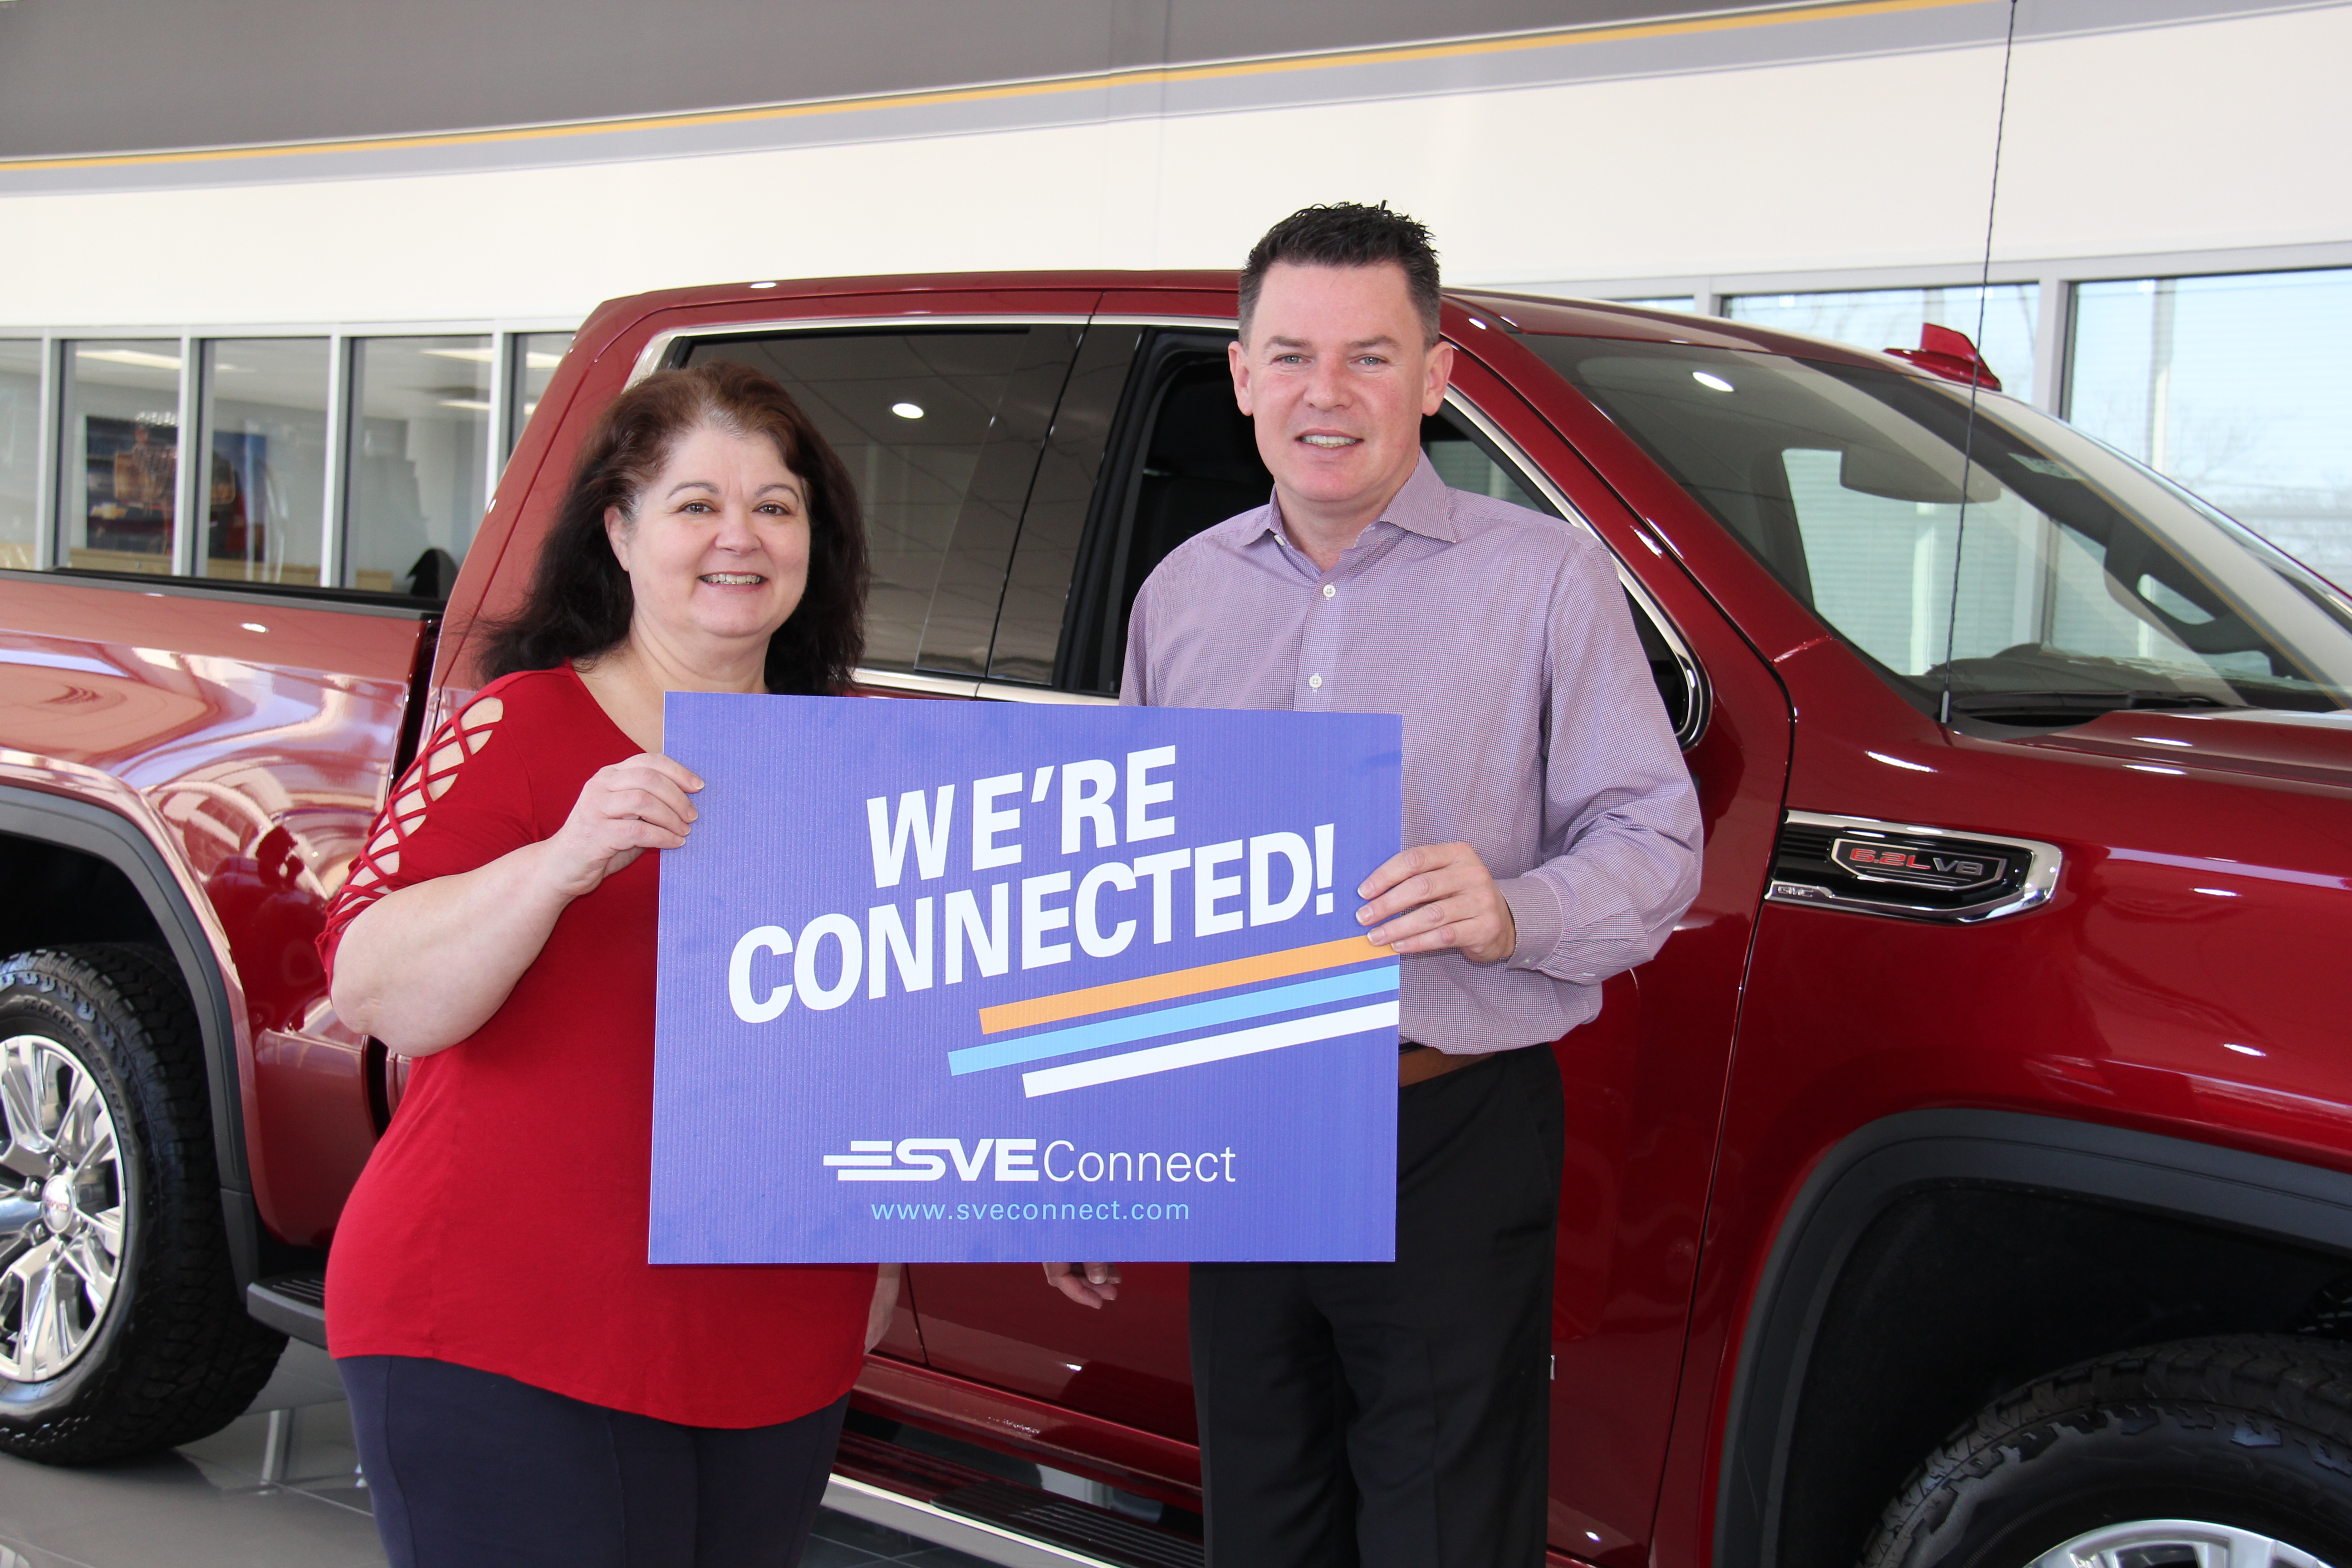 Riverside Chevrolet in Kimball is connected